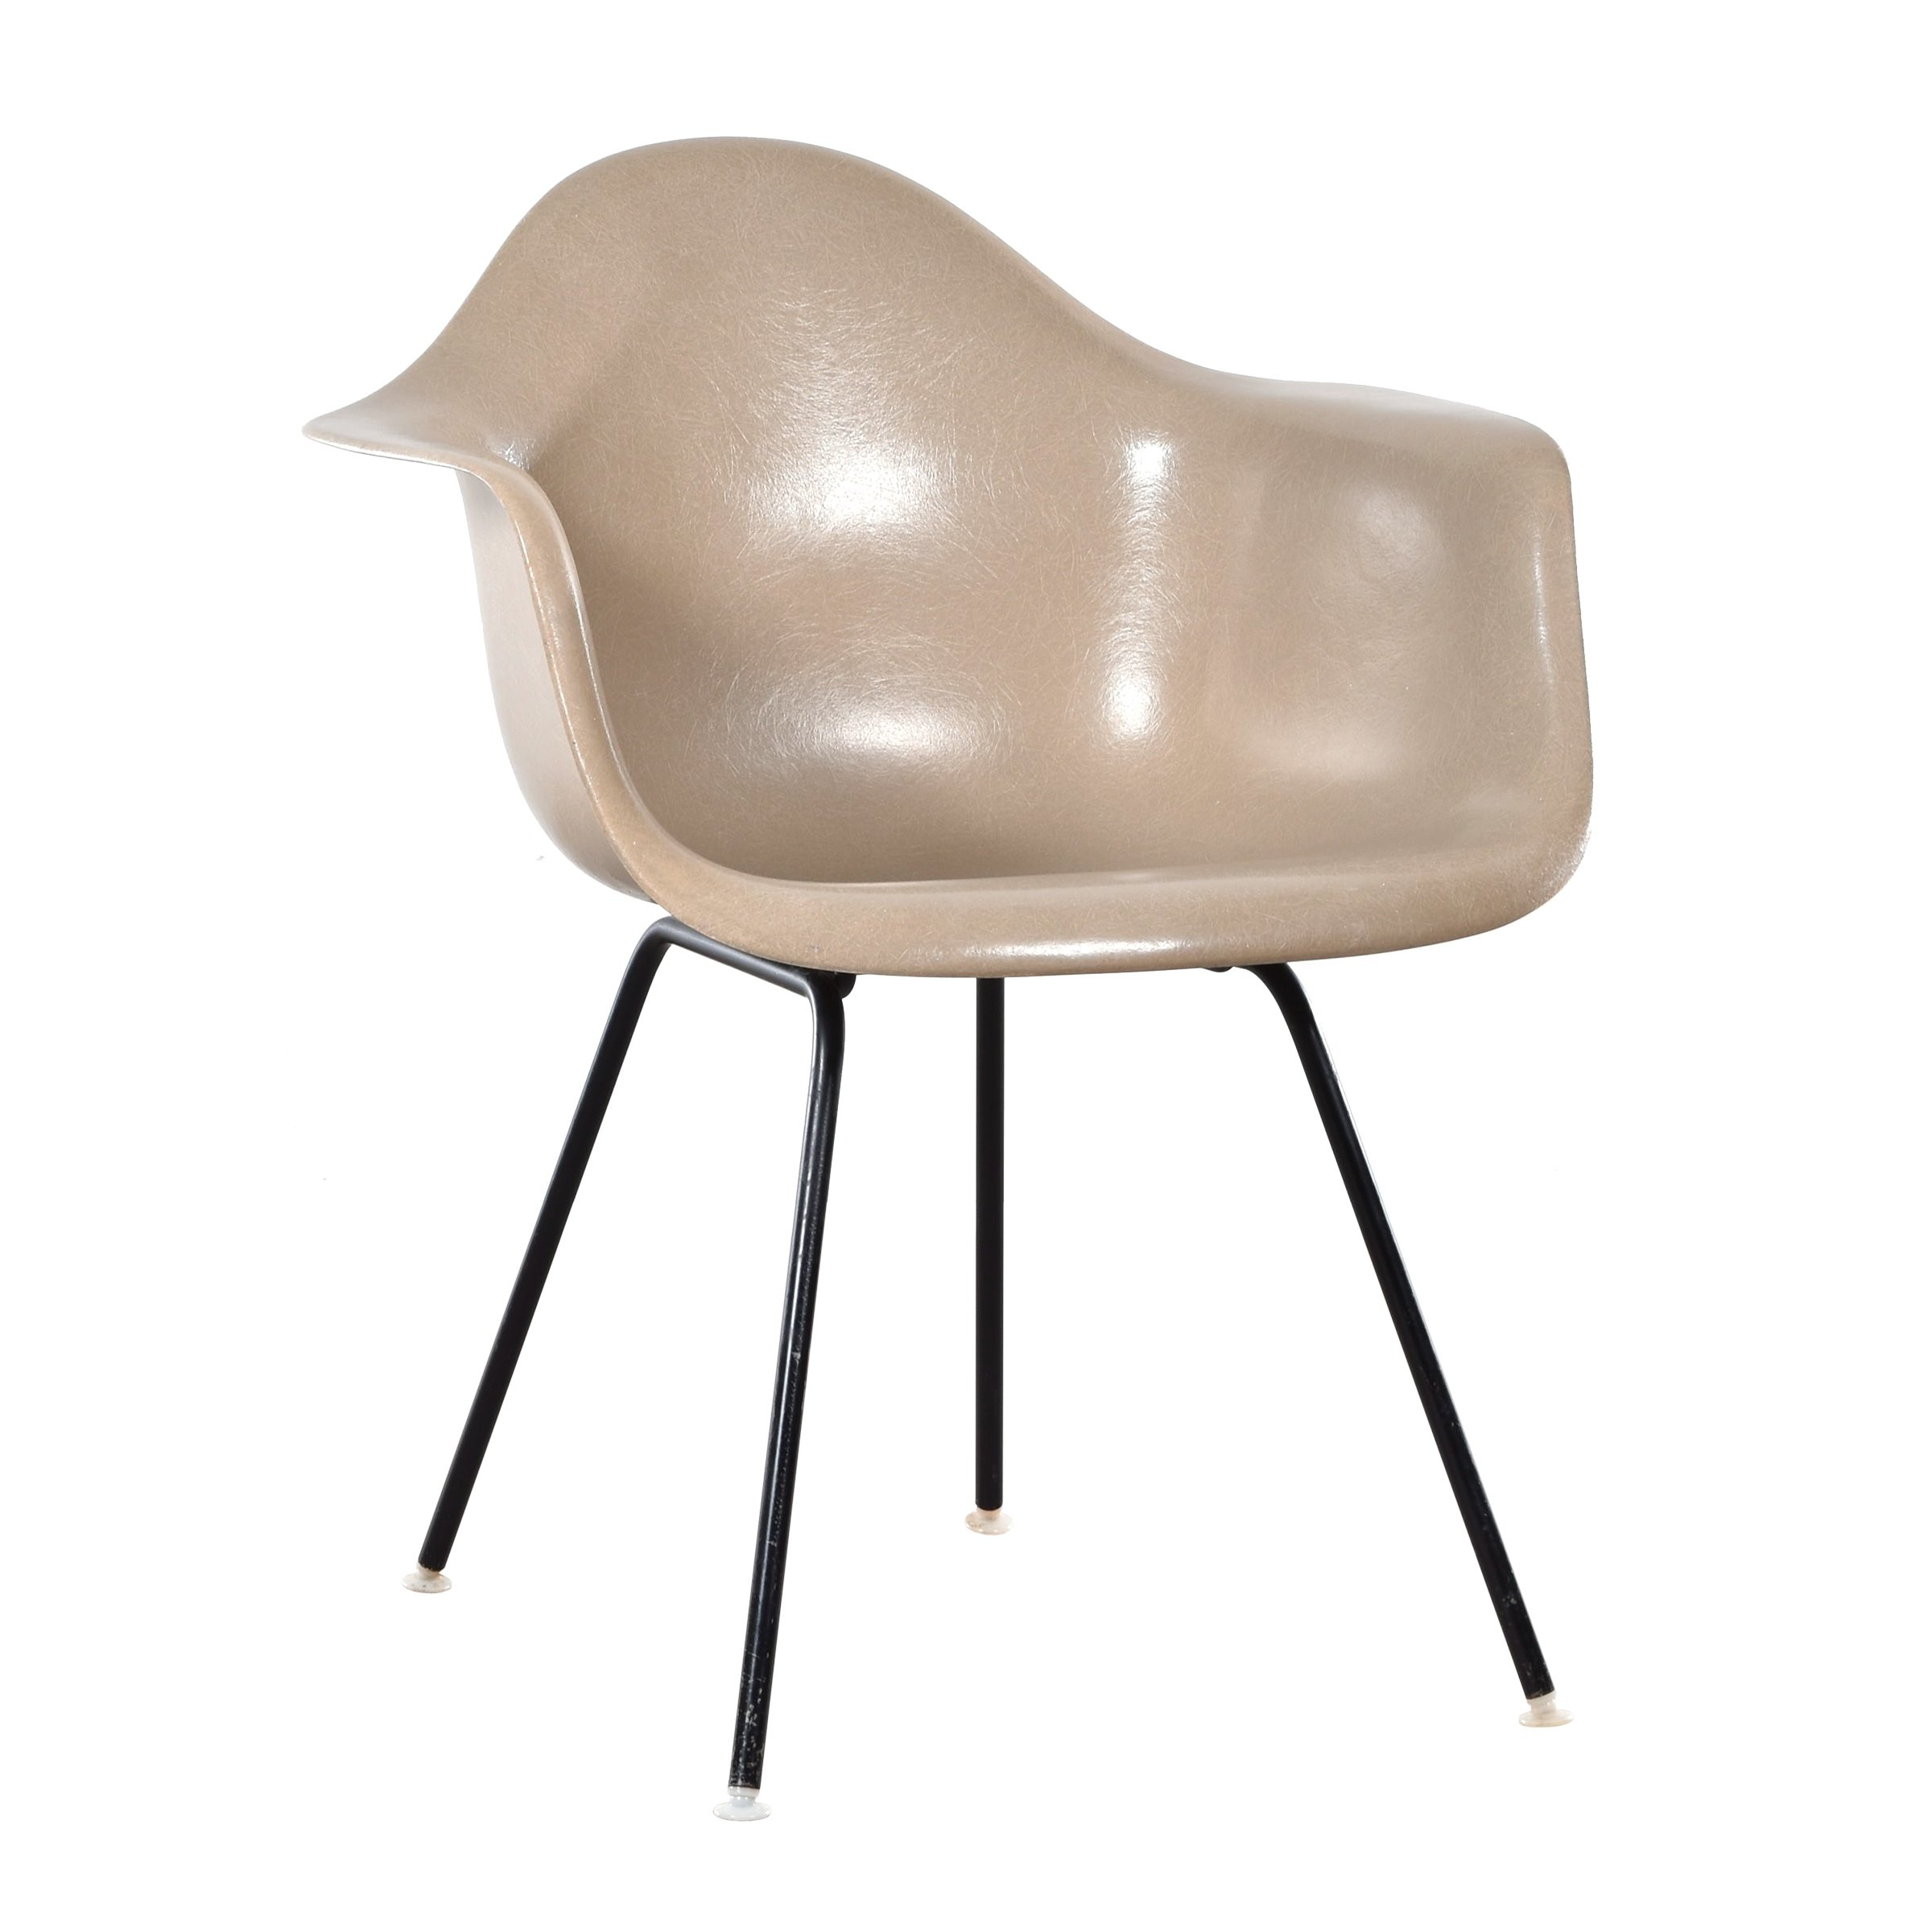 Charles & Ray Eames Sessel Dax Greige Arm Chair By Charles Ray Eames For Herman Miller 1960s